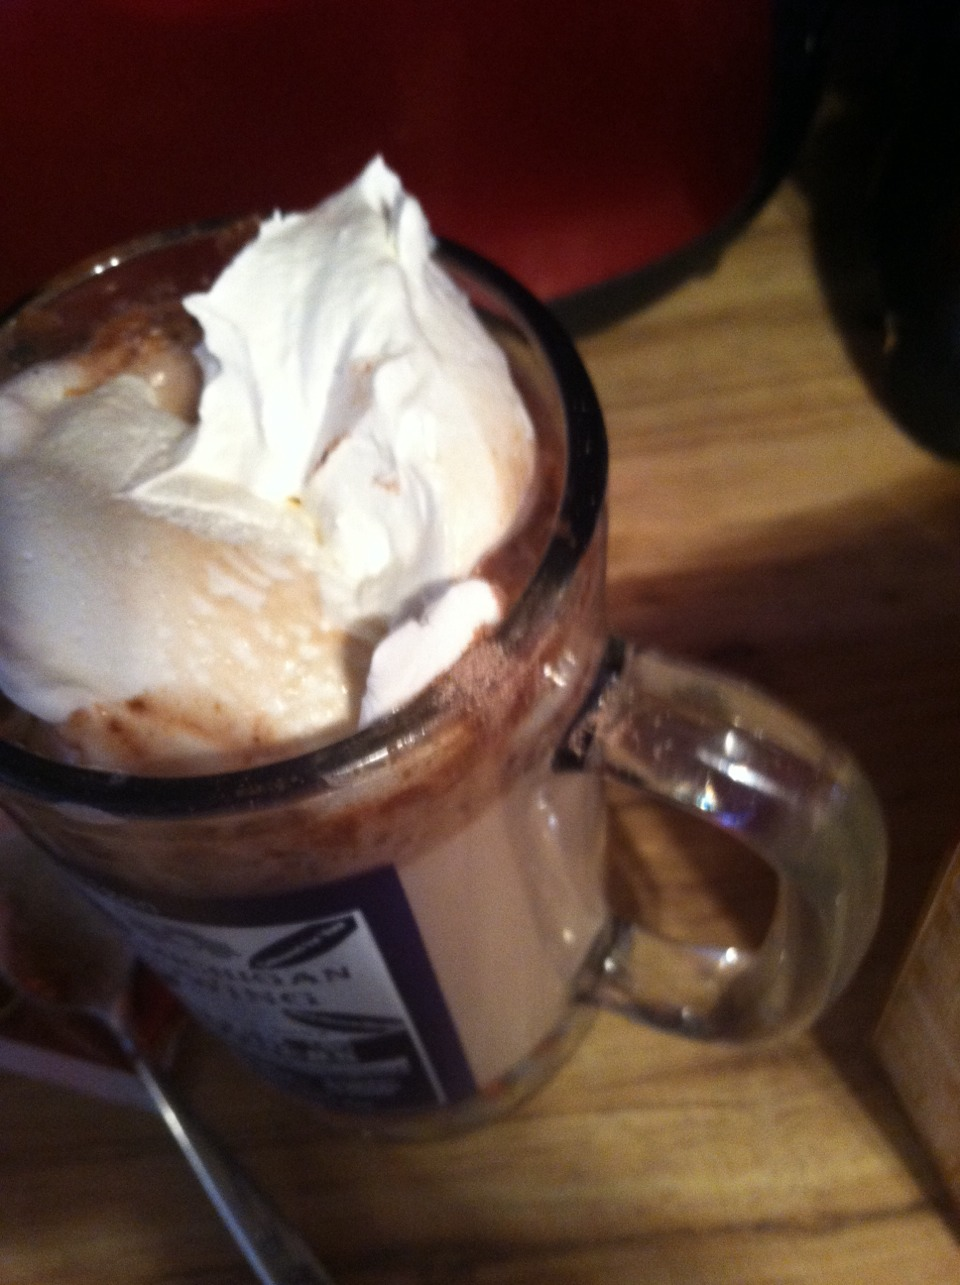 Put the cool whip on top of the cocoa.